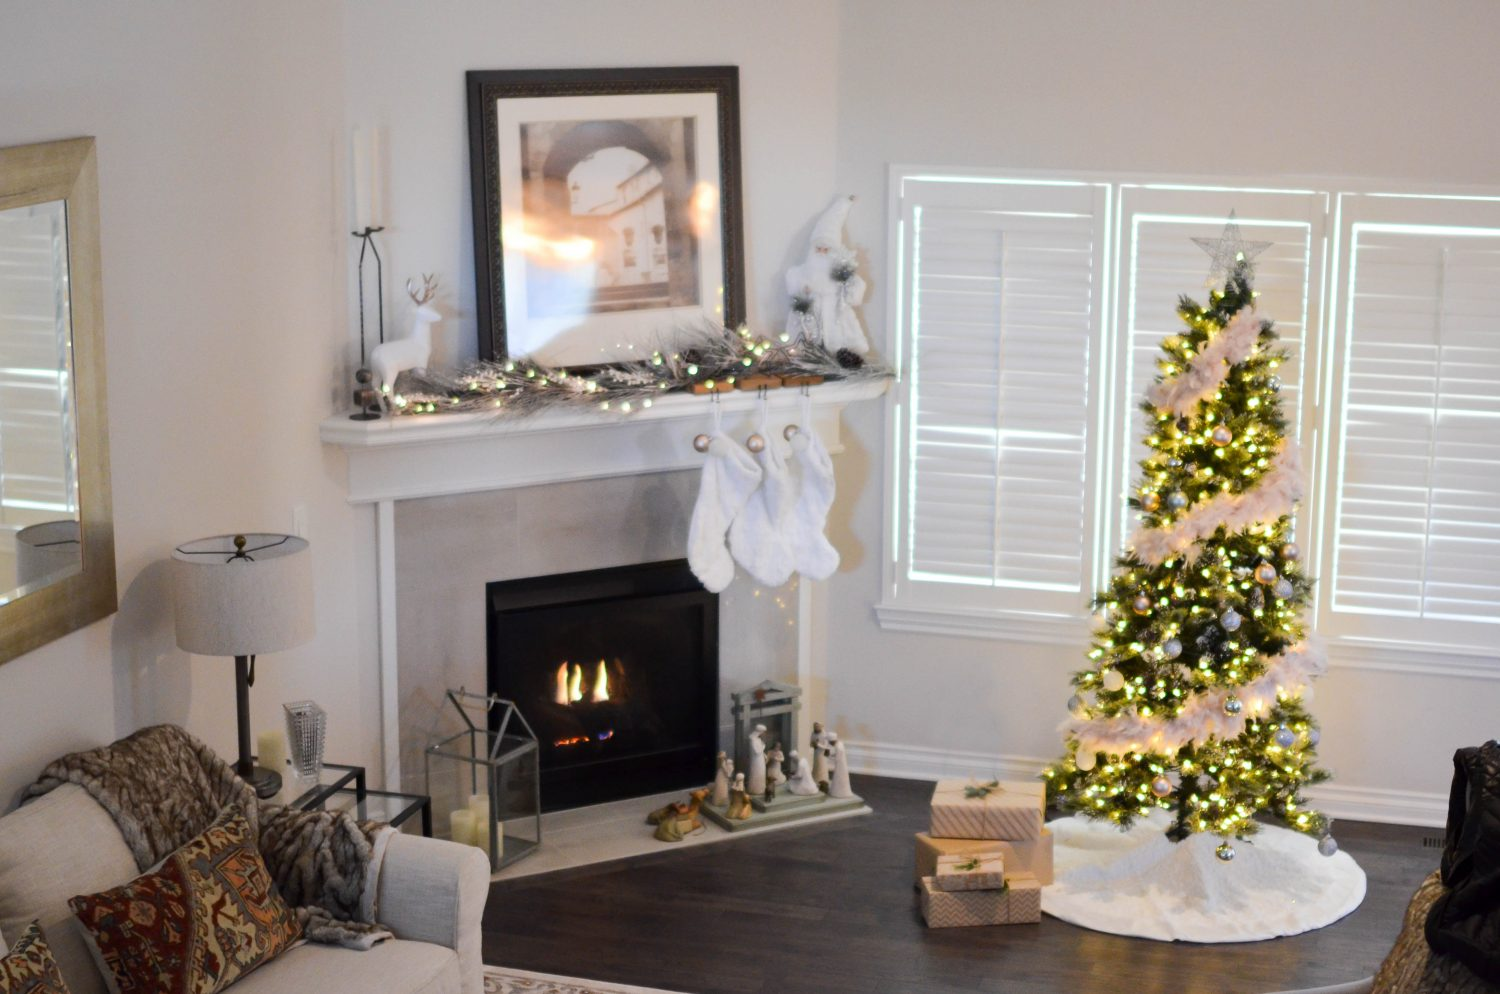 Living room and fireplace decorated for Christmas